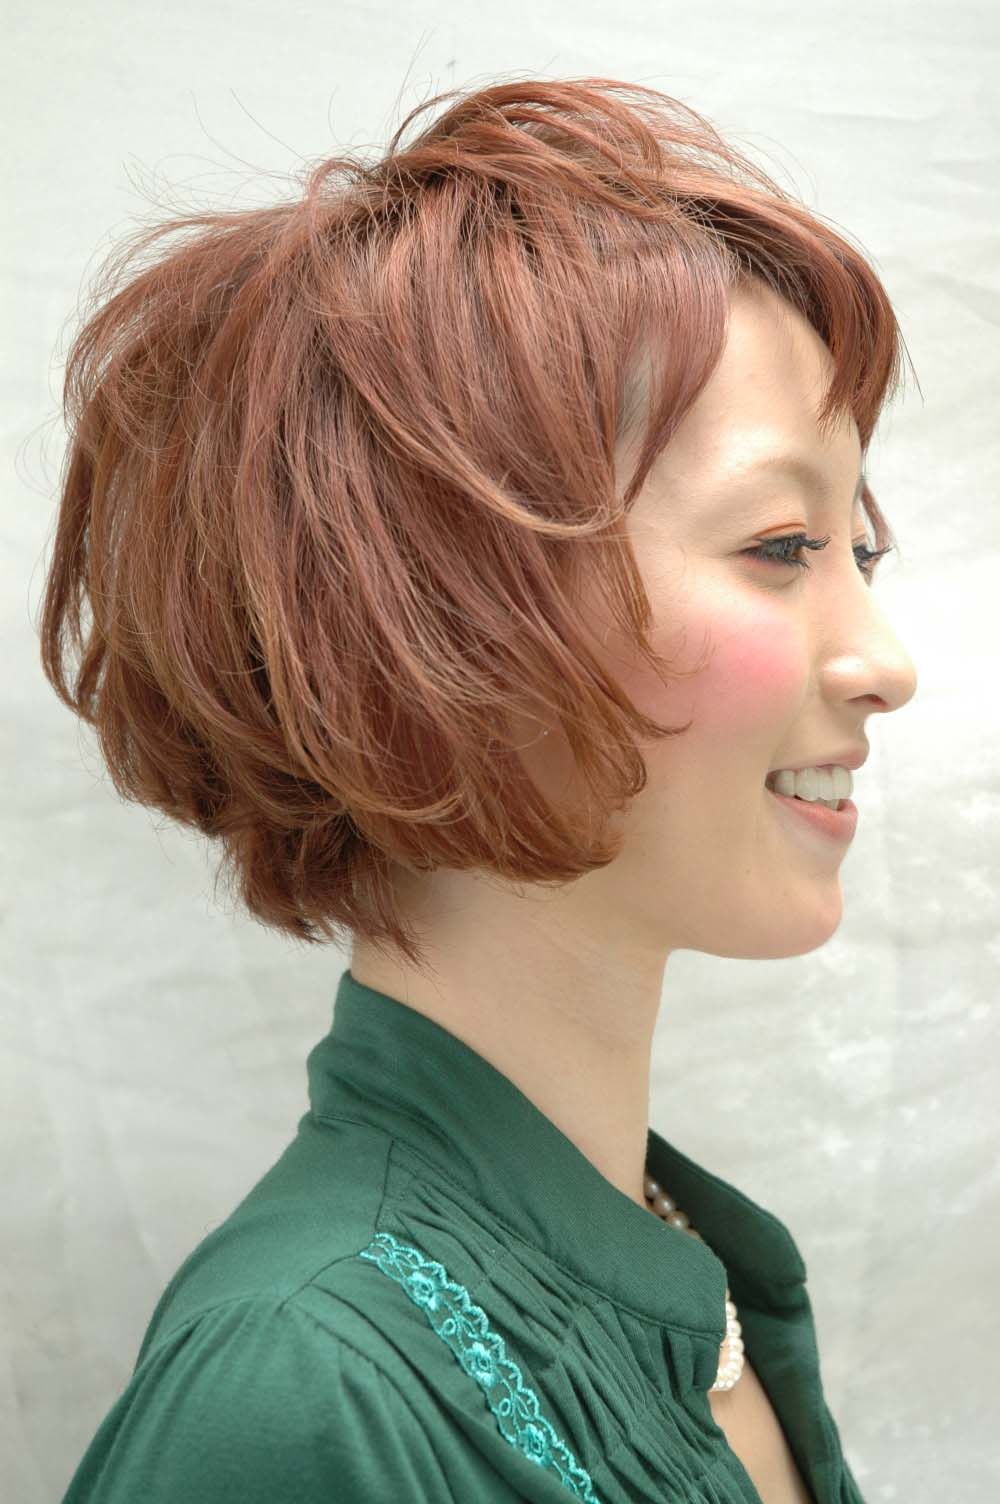 Traditional Japanese Hairstyles For Short Hair : Short Hair Styles: The Japanese Traditional Hairstyle Picture